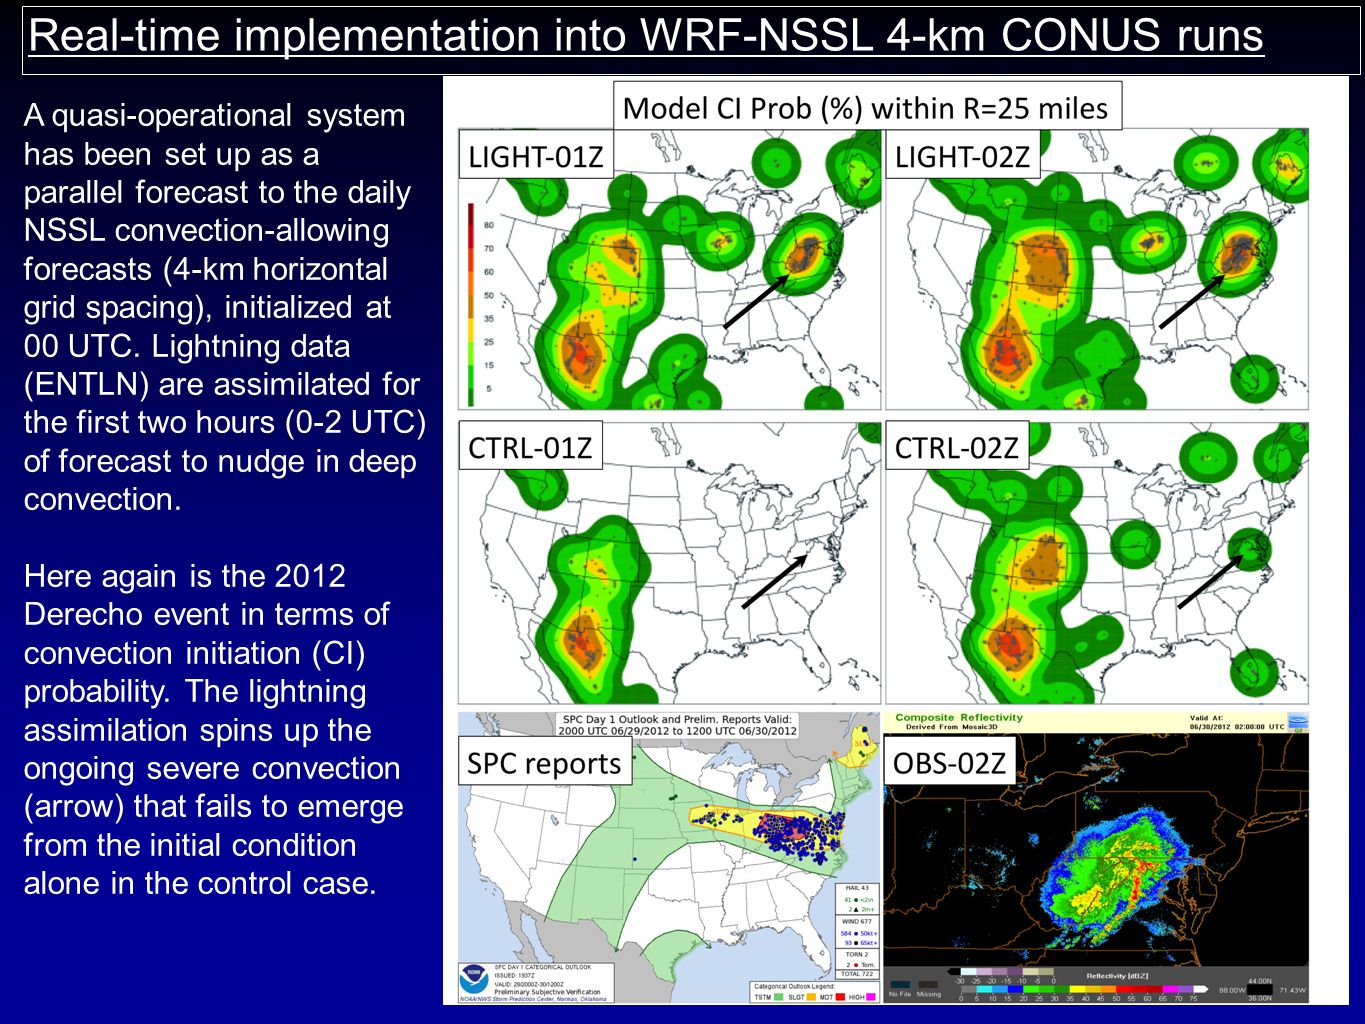 Real-time implementation into WRF-NSSL 4-km CONUS runs A quasi-operational system has been set up as a parallel forecast to the daily NSSL convection-allowing forecasts (4-km horizontal grid spacing), initialized at 00 UTC.